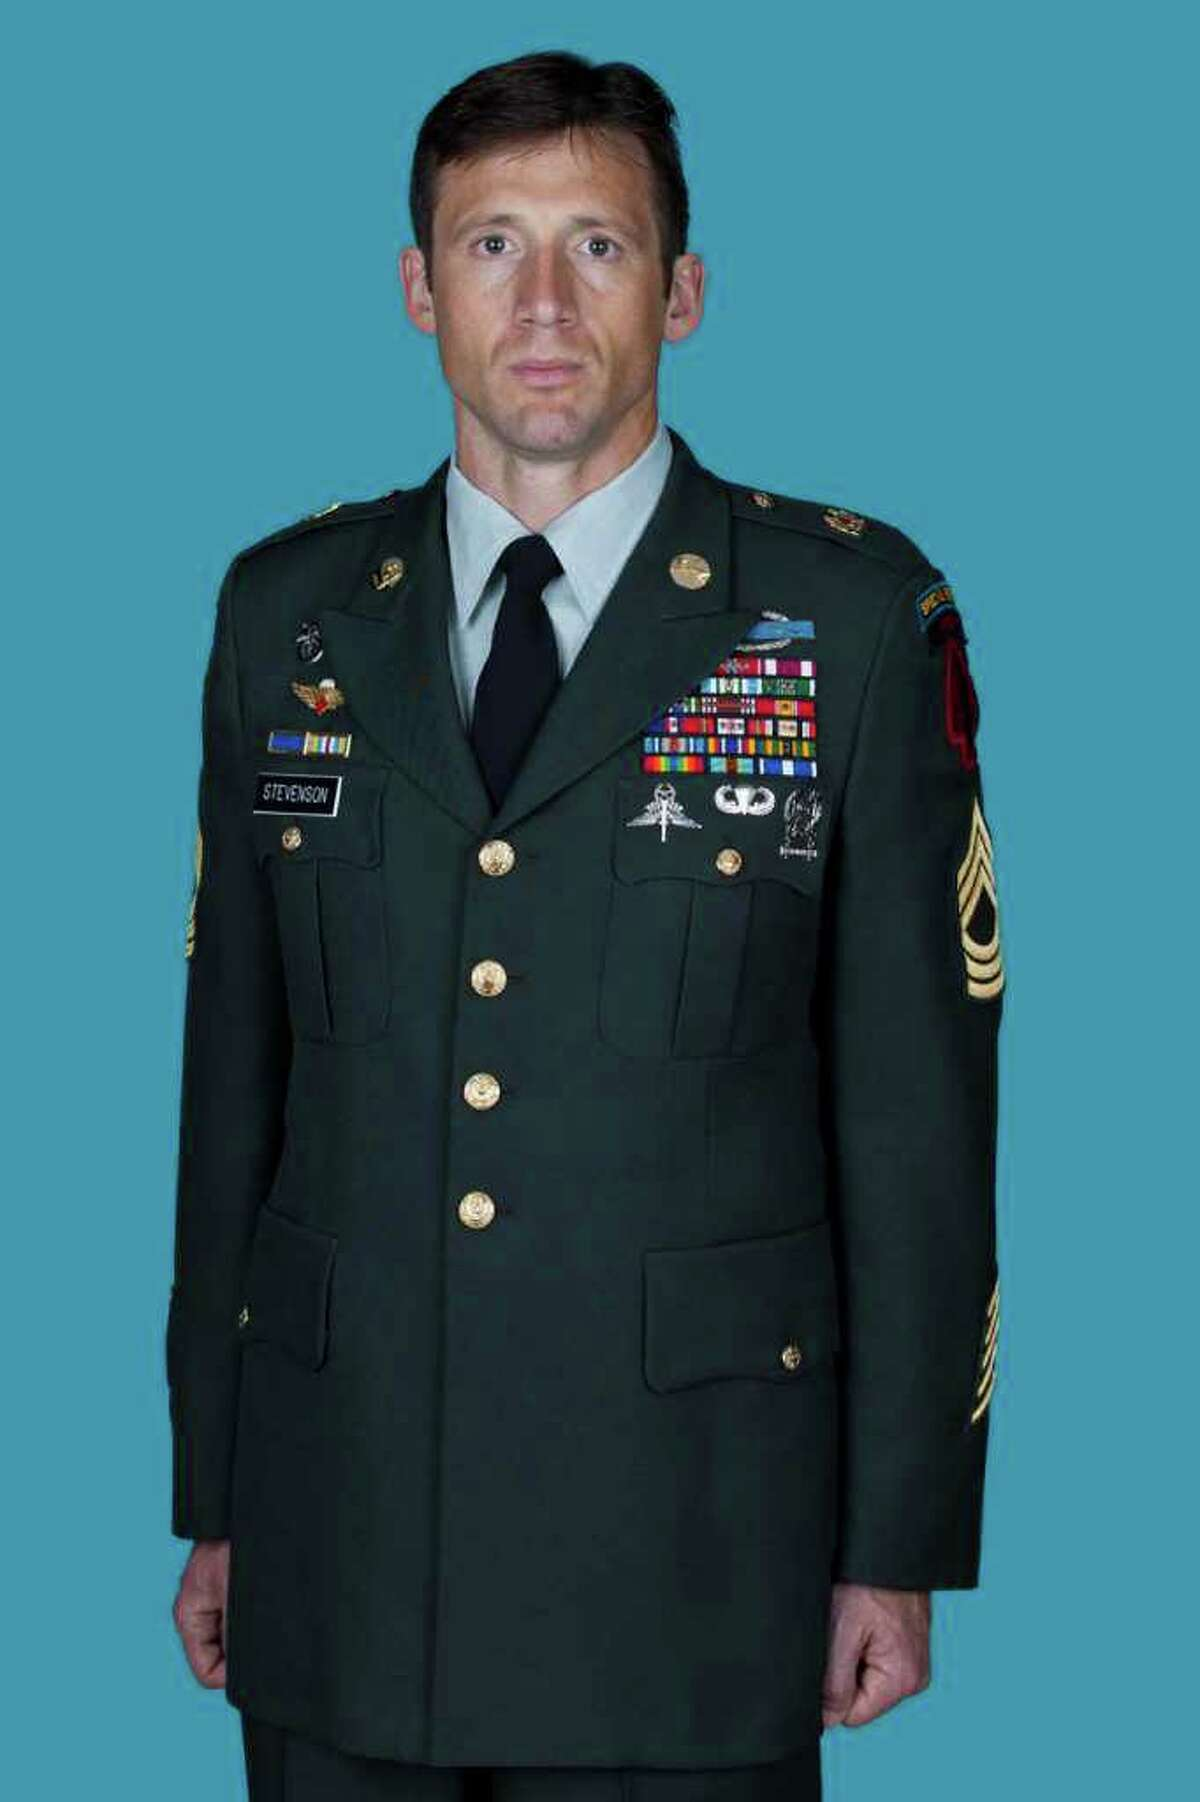 Master Sgt. Benjamin A. Stevenson, 36, was a highly decorated soldier with the U.S. Army Special Operations Command stationed in Fort Bragg, N.C., according to an Army news release.